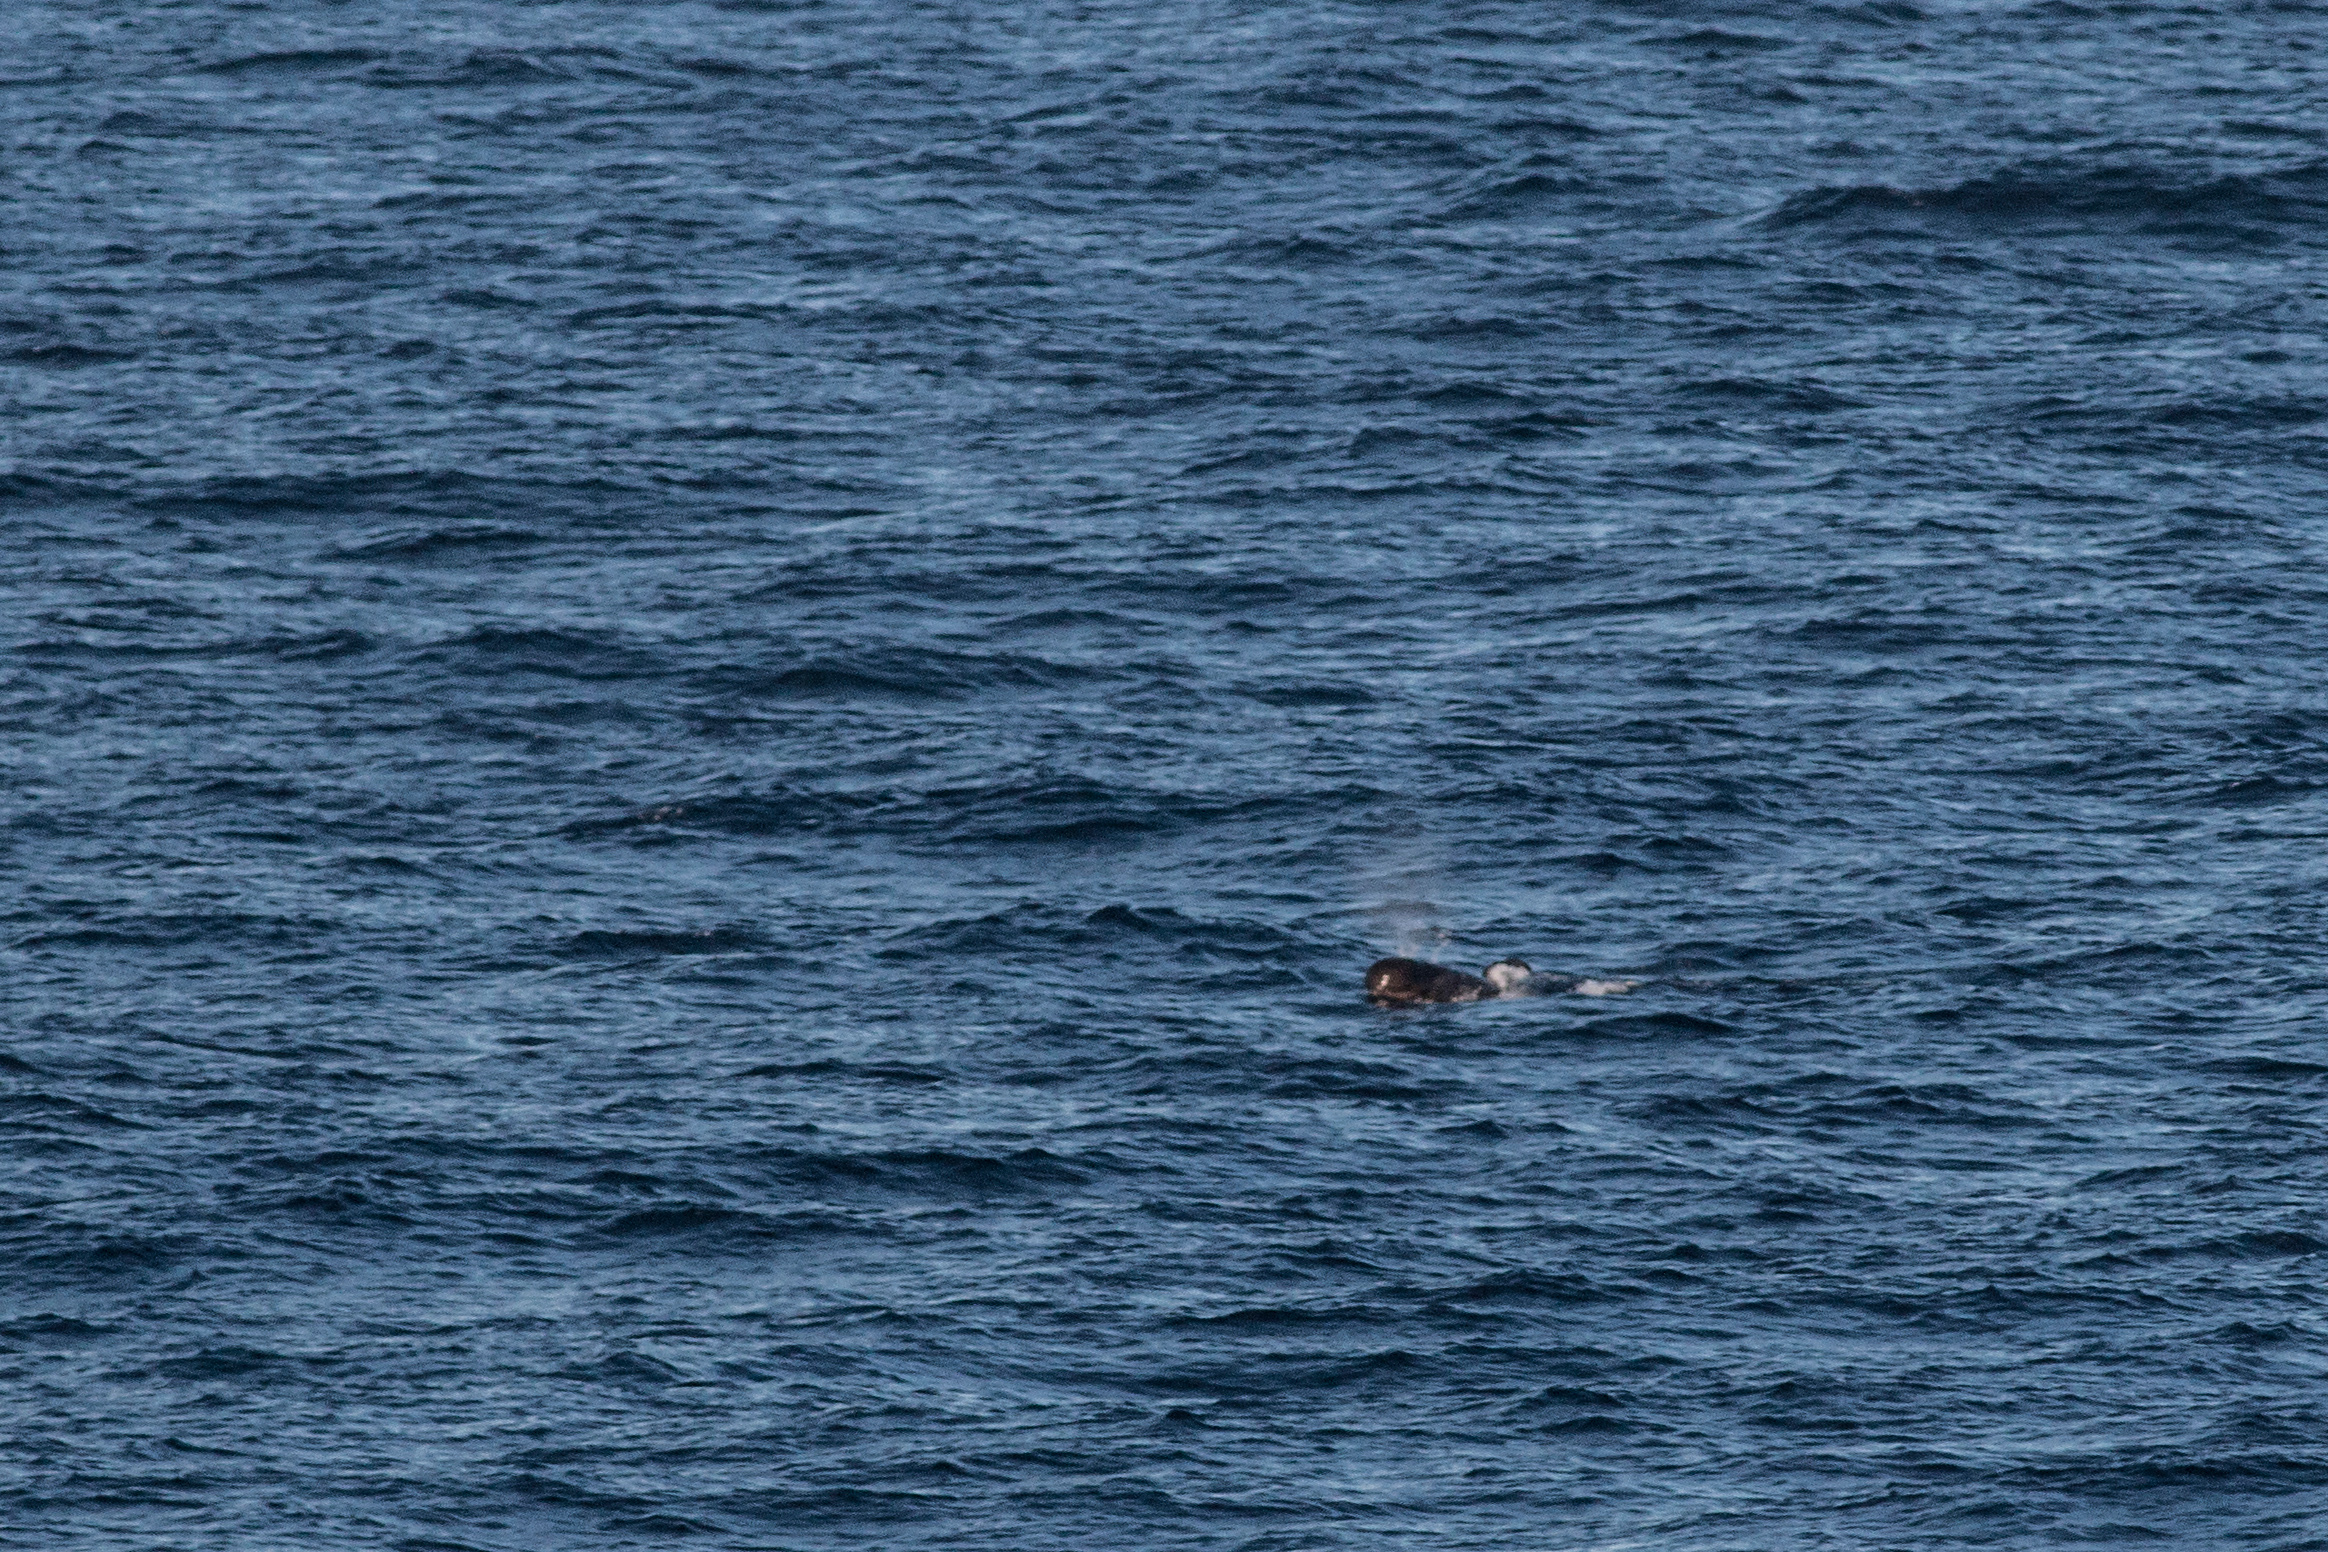 A Long Finned Pilot Whale behind the boat